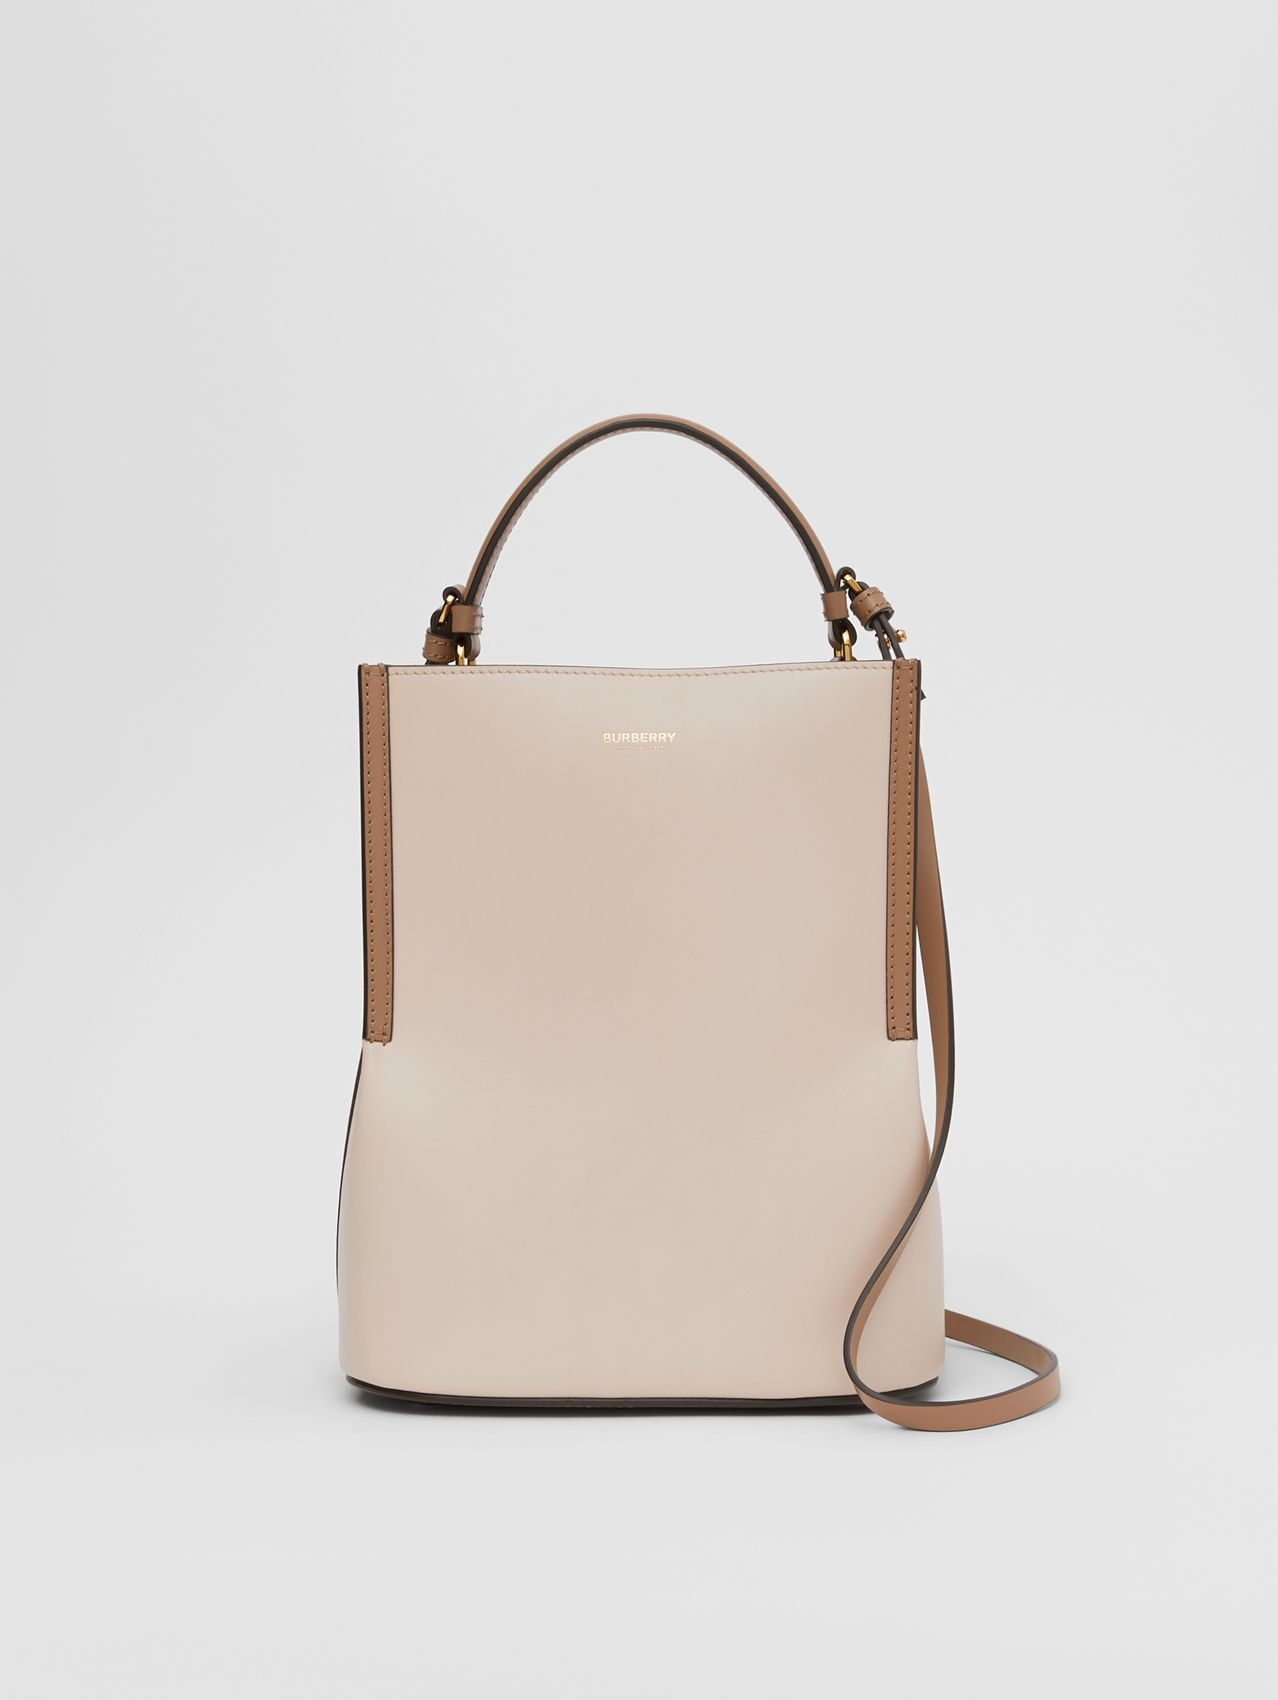 Small Two-tone Leather Peggy Bucket Bag in Buttermilk